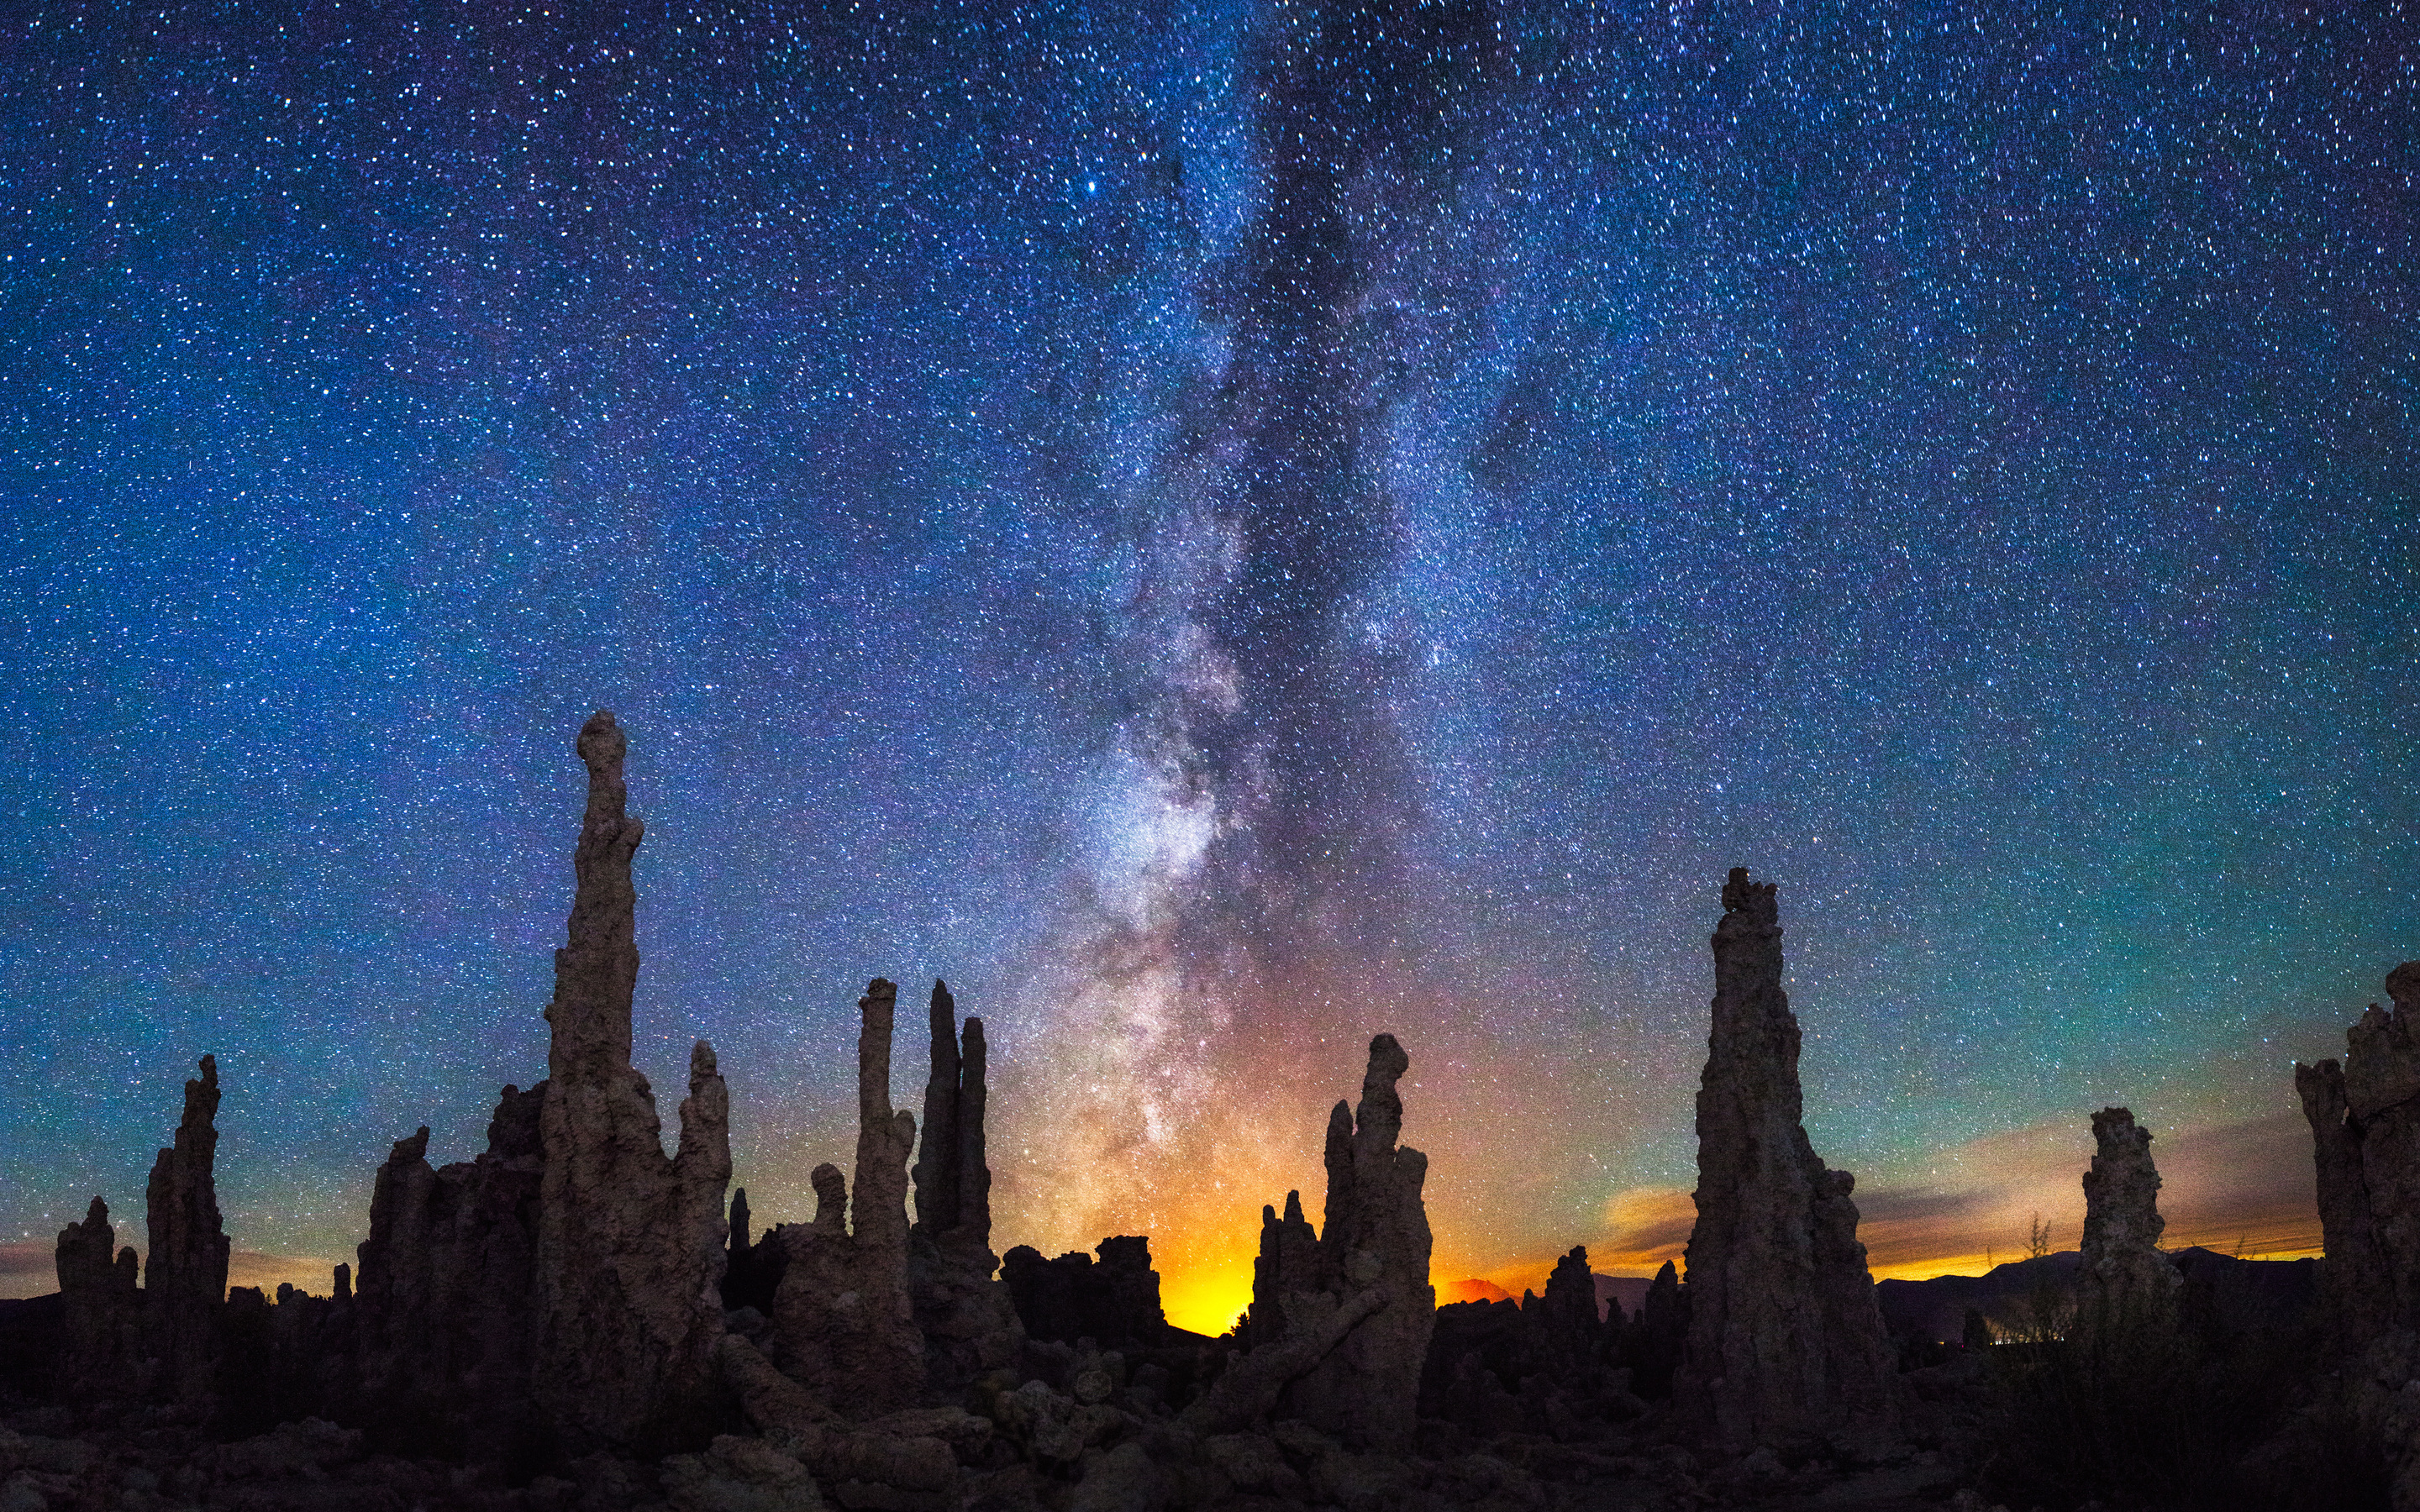 mono-lake-near-mammoth-lakes-california-milky-way-ig.jpg